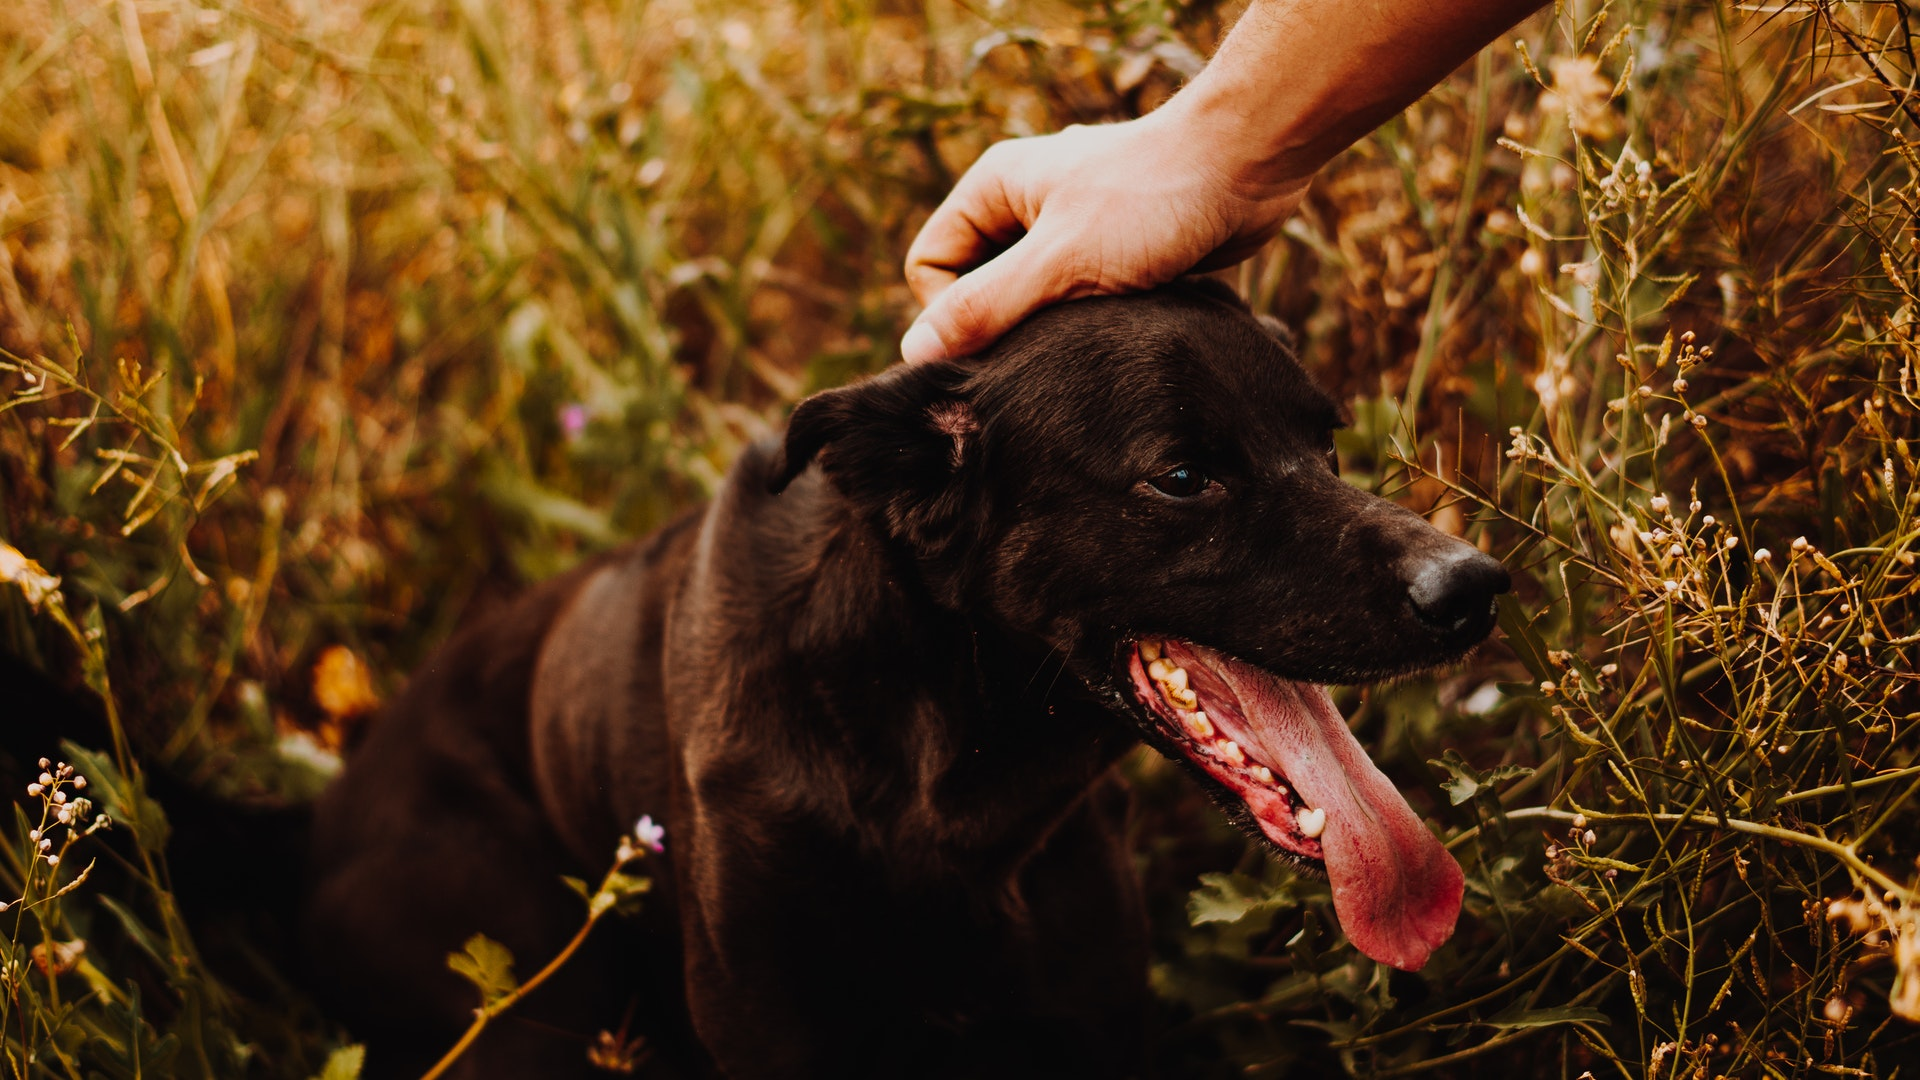 fda-announces-dog-food-brands-that-could-cause-heart-failure